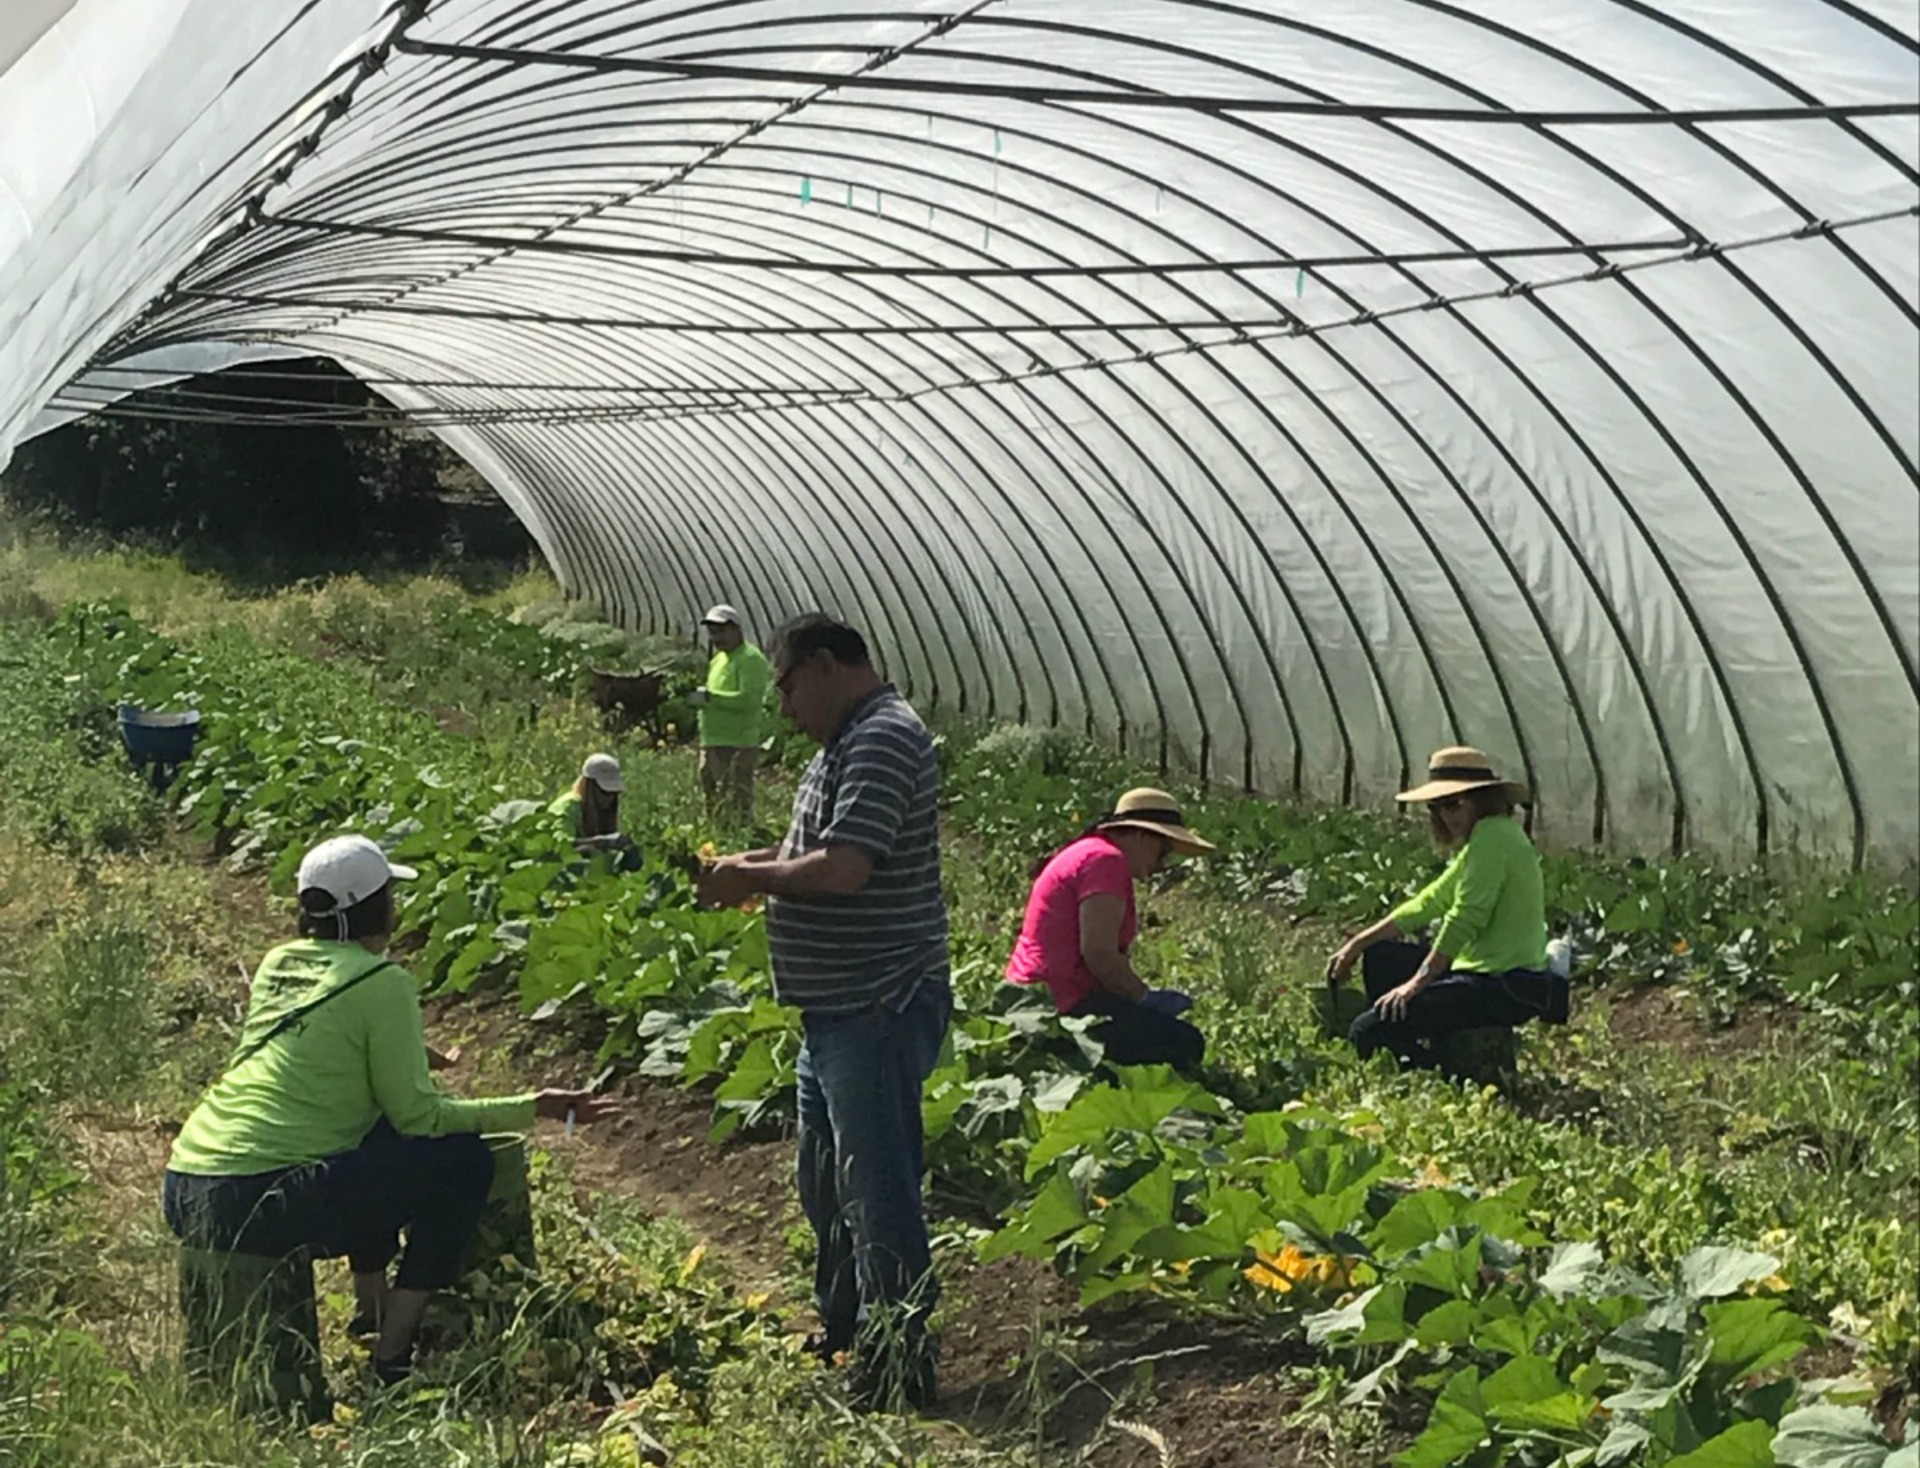 Farm To Pantry volunteers glean excess produce from farms to donate to charities.